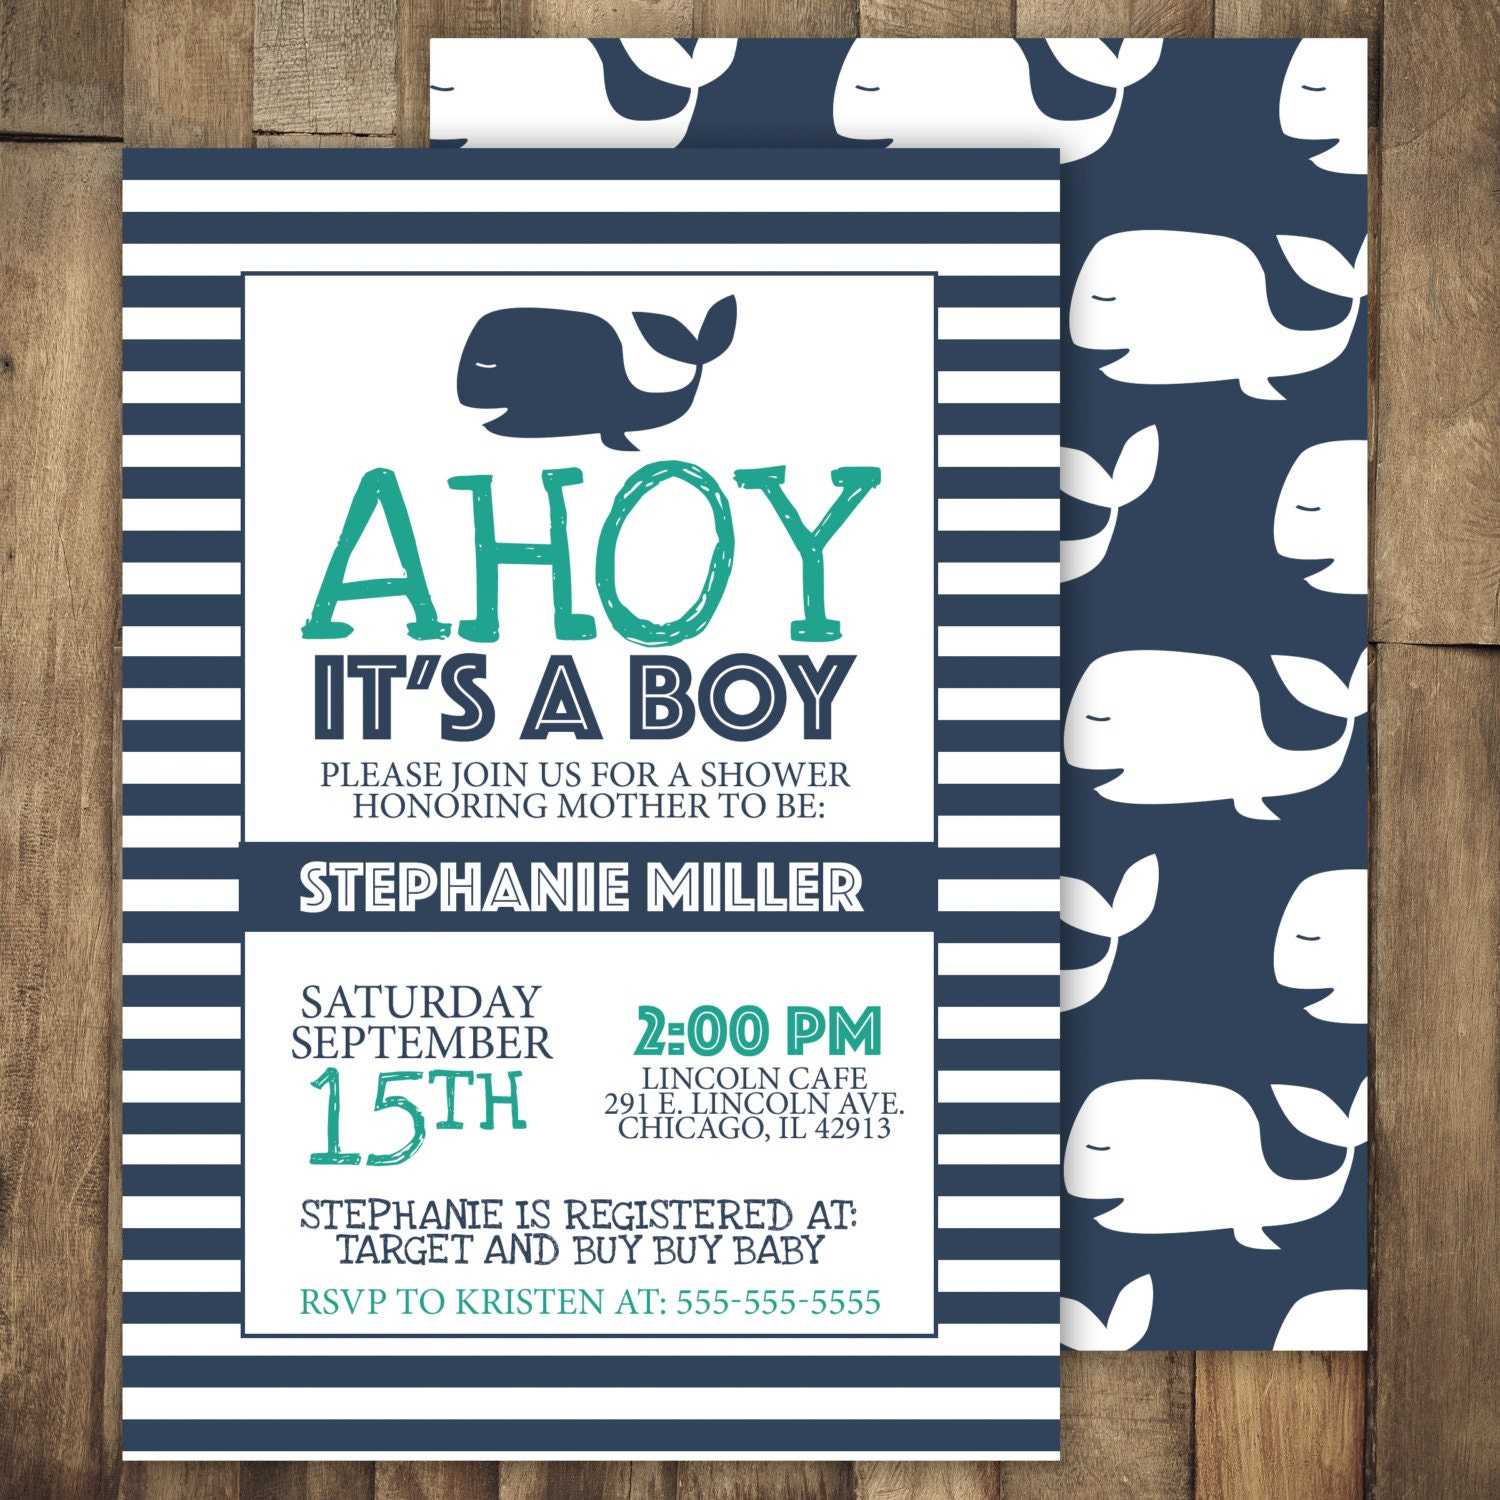 Ahoy It39;s A Boy Baby Shower Invitation Whale by JordanSantosDesign